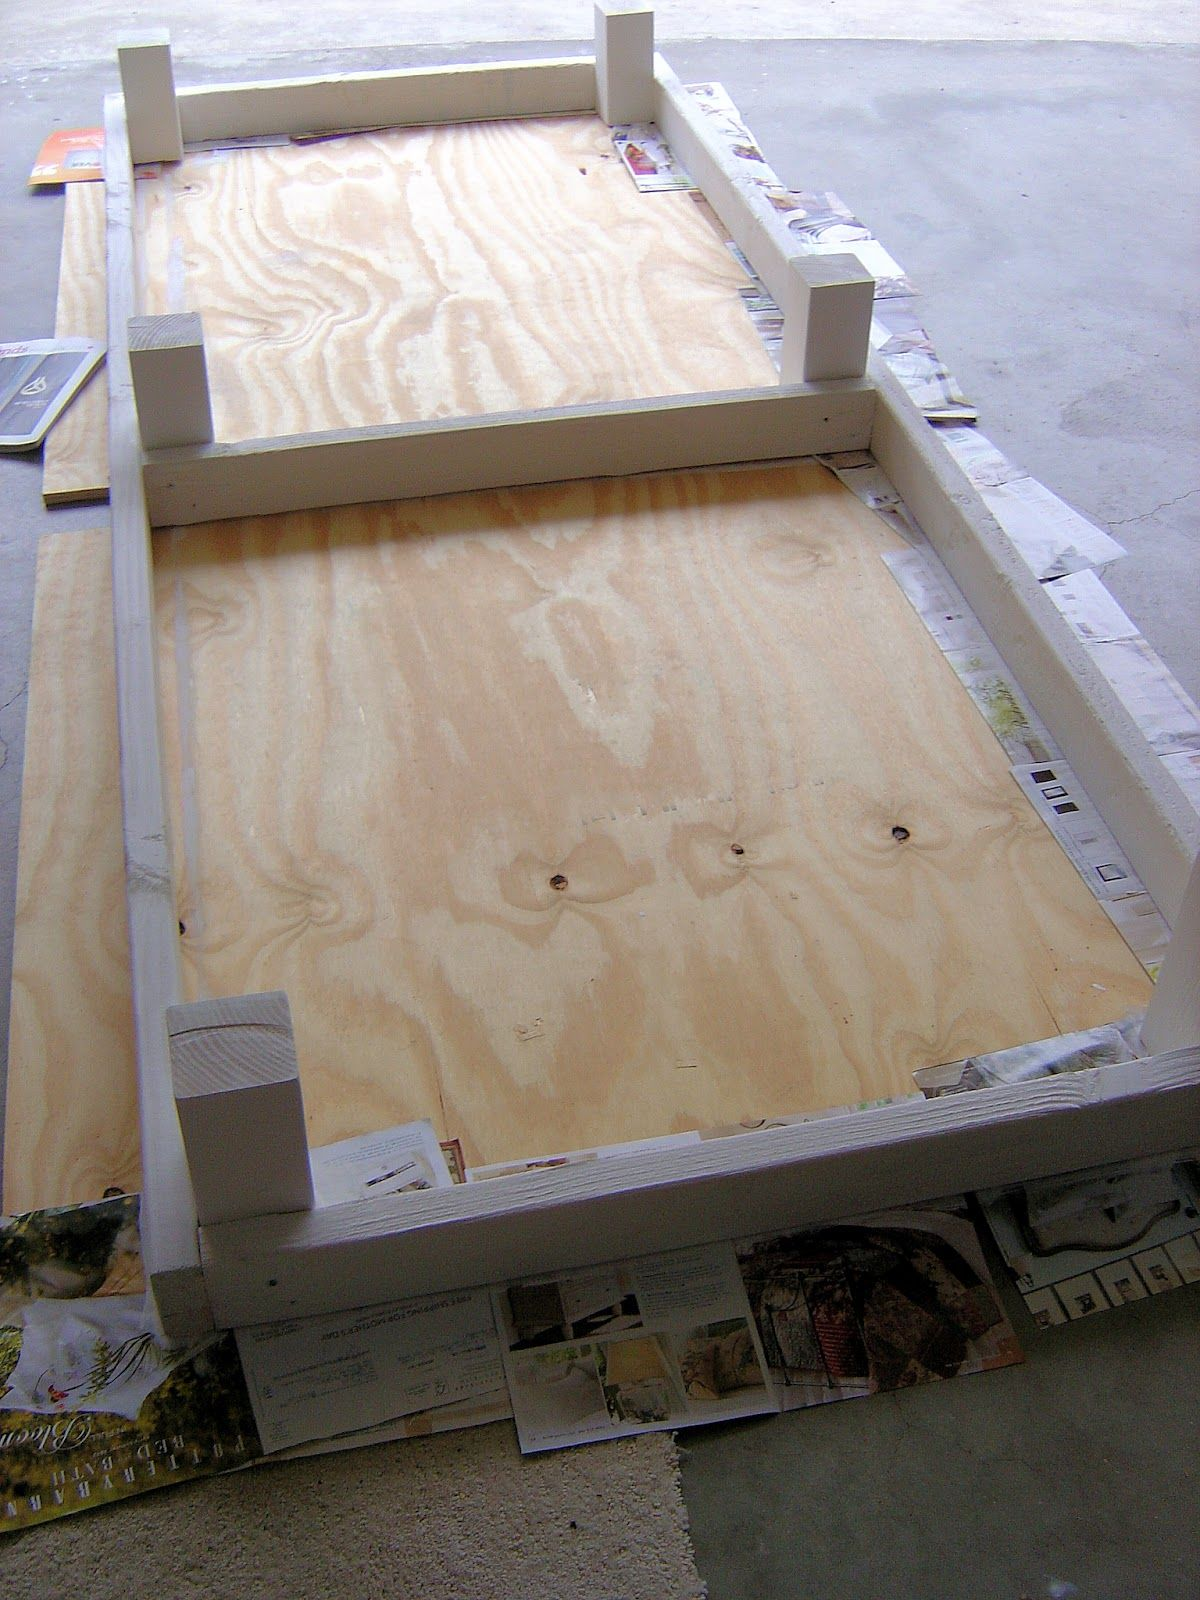 DIY Outdoor Project: Phase 2 - Making the Outdoor Daybed #diyoutdoorprojects